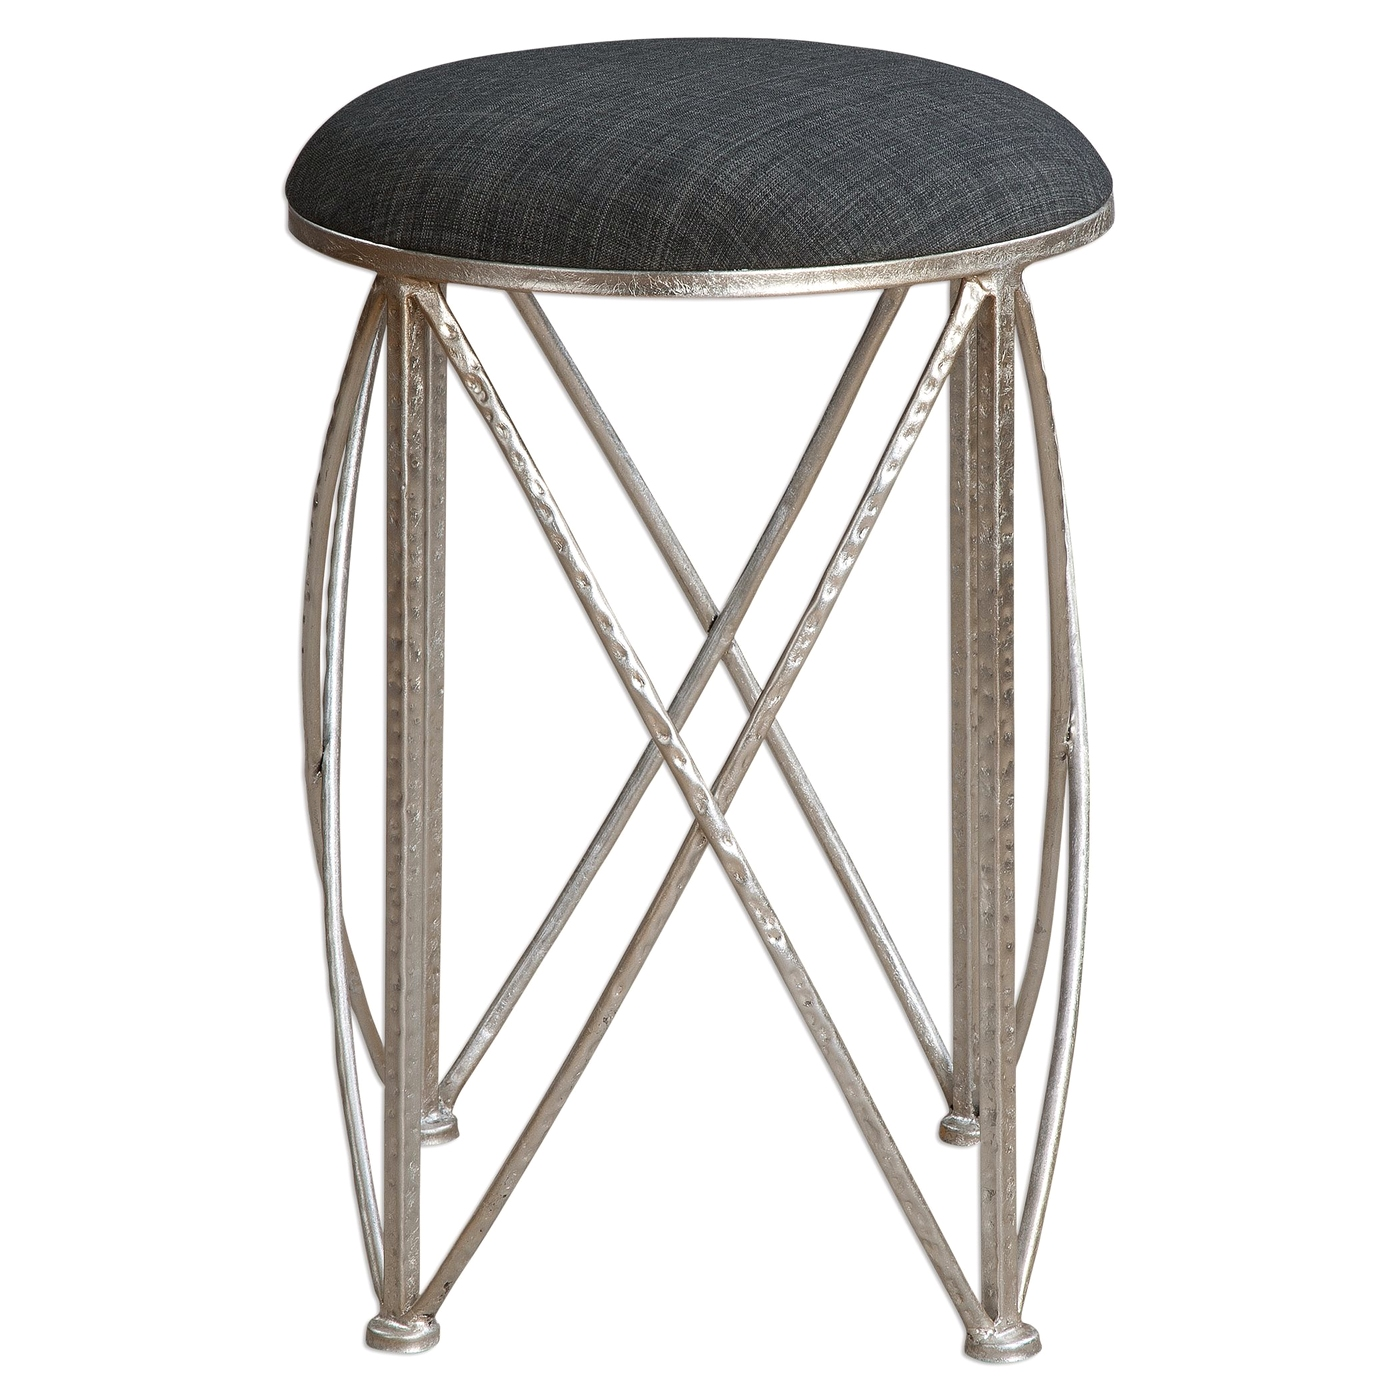 Delaine Small Silver Hammered Iron Stool With Dark